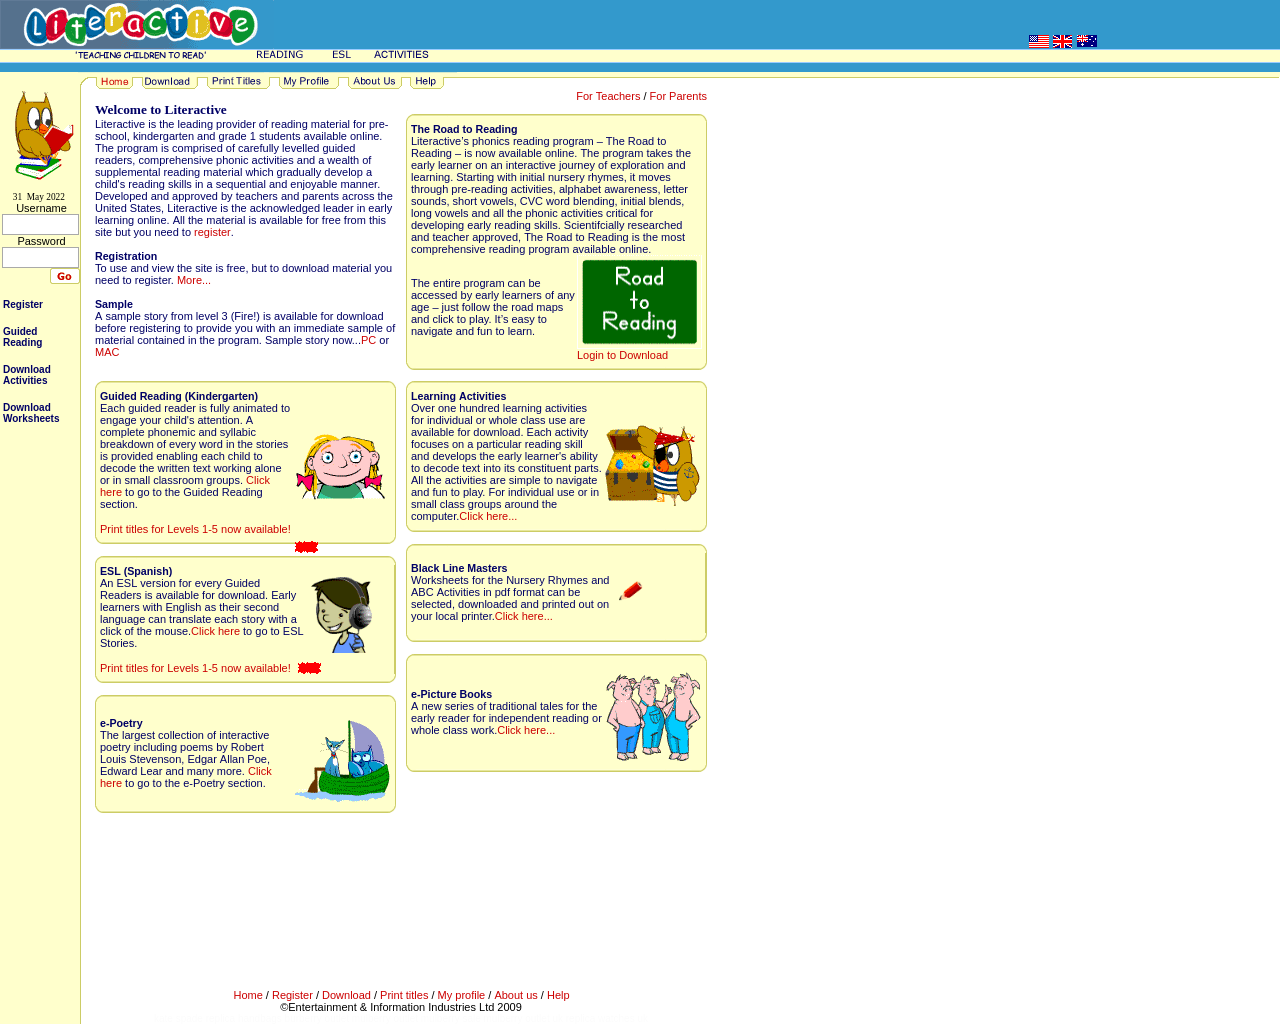 Guided Reading Worksheets Ks2 Worksheets for Education – Guided Reading Worksheets